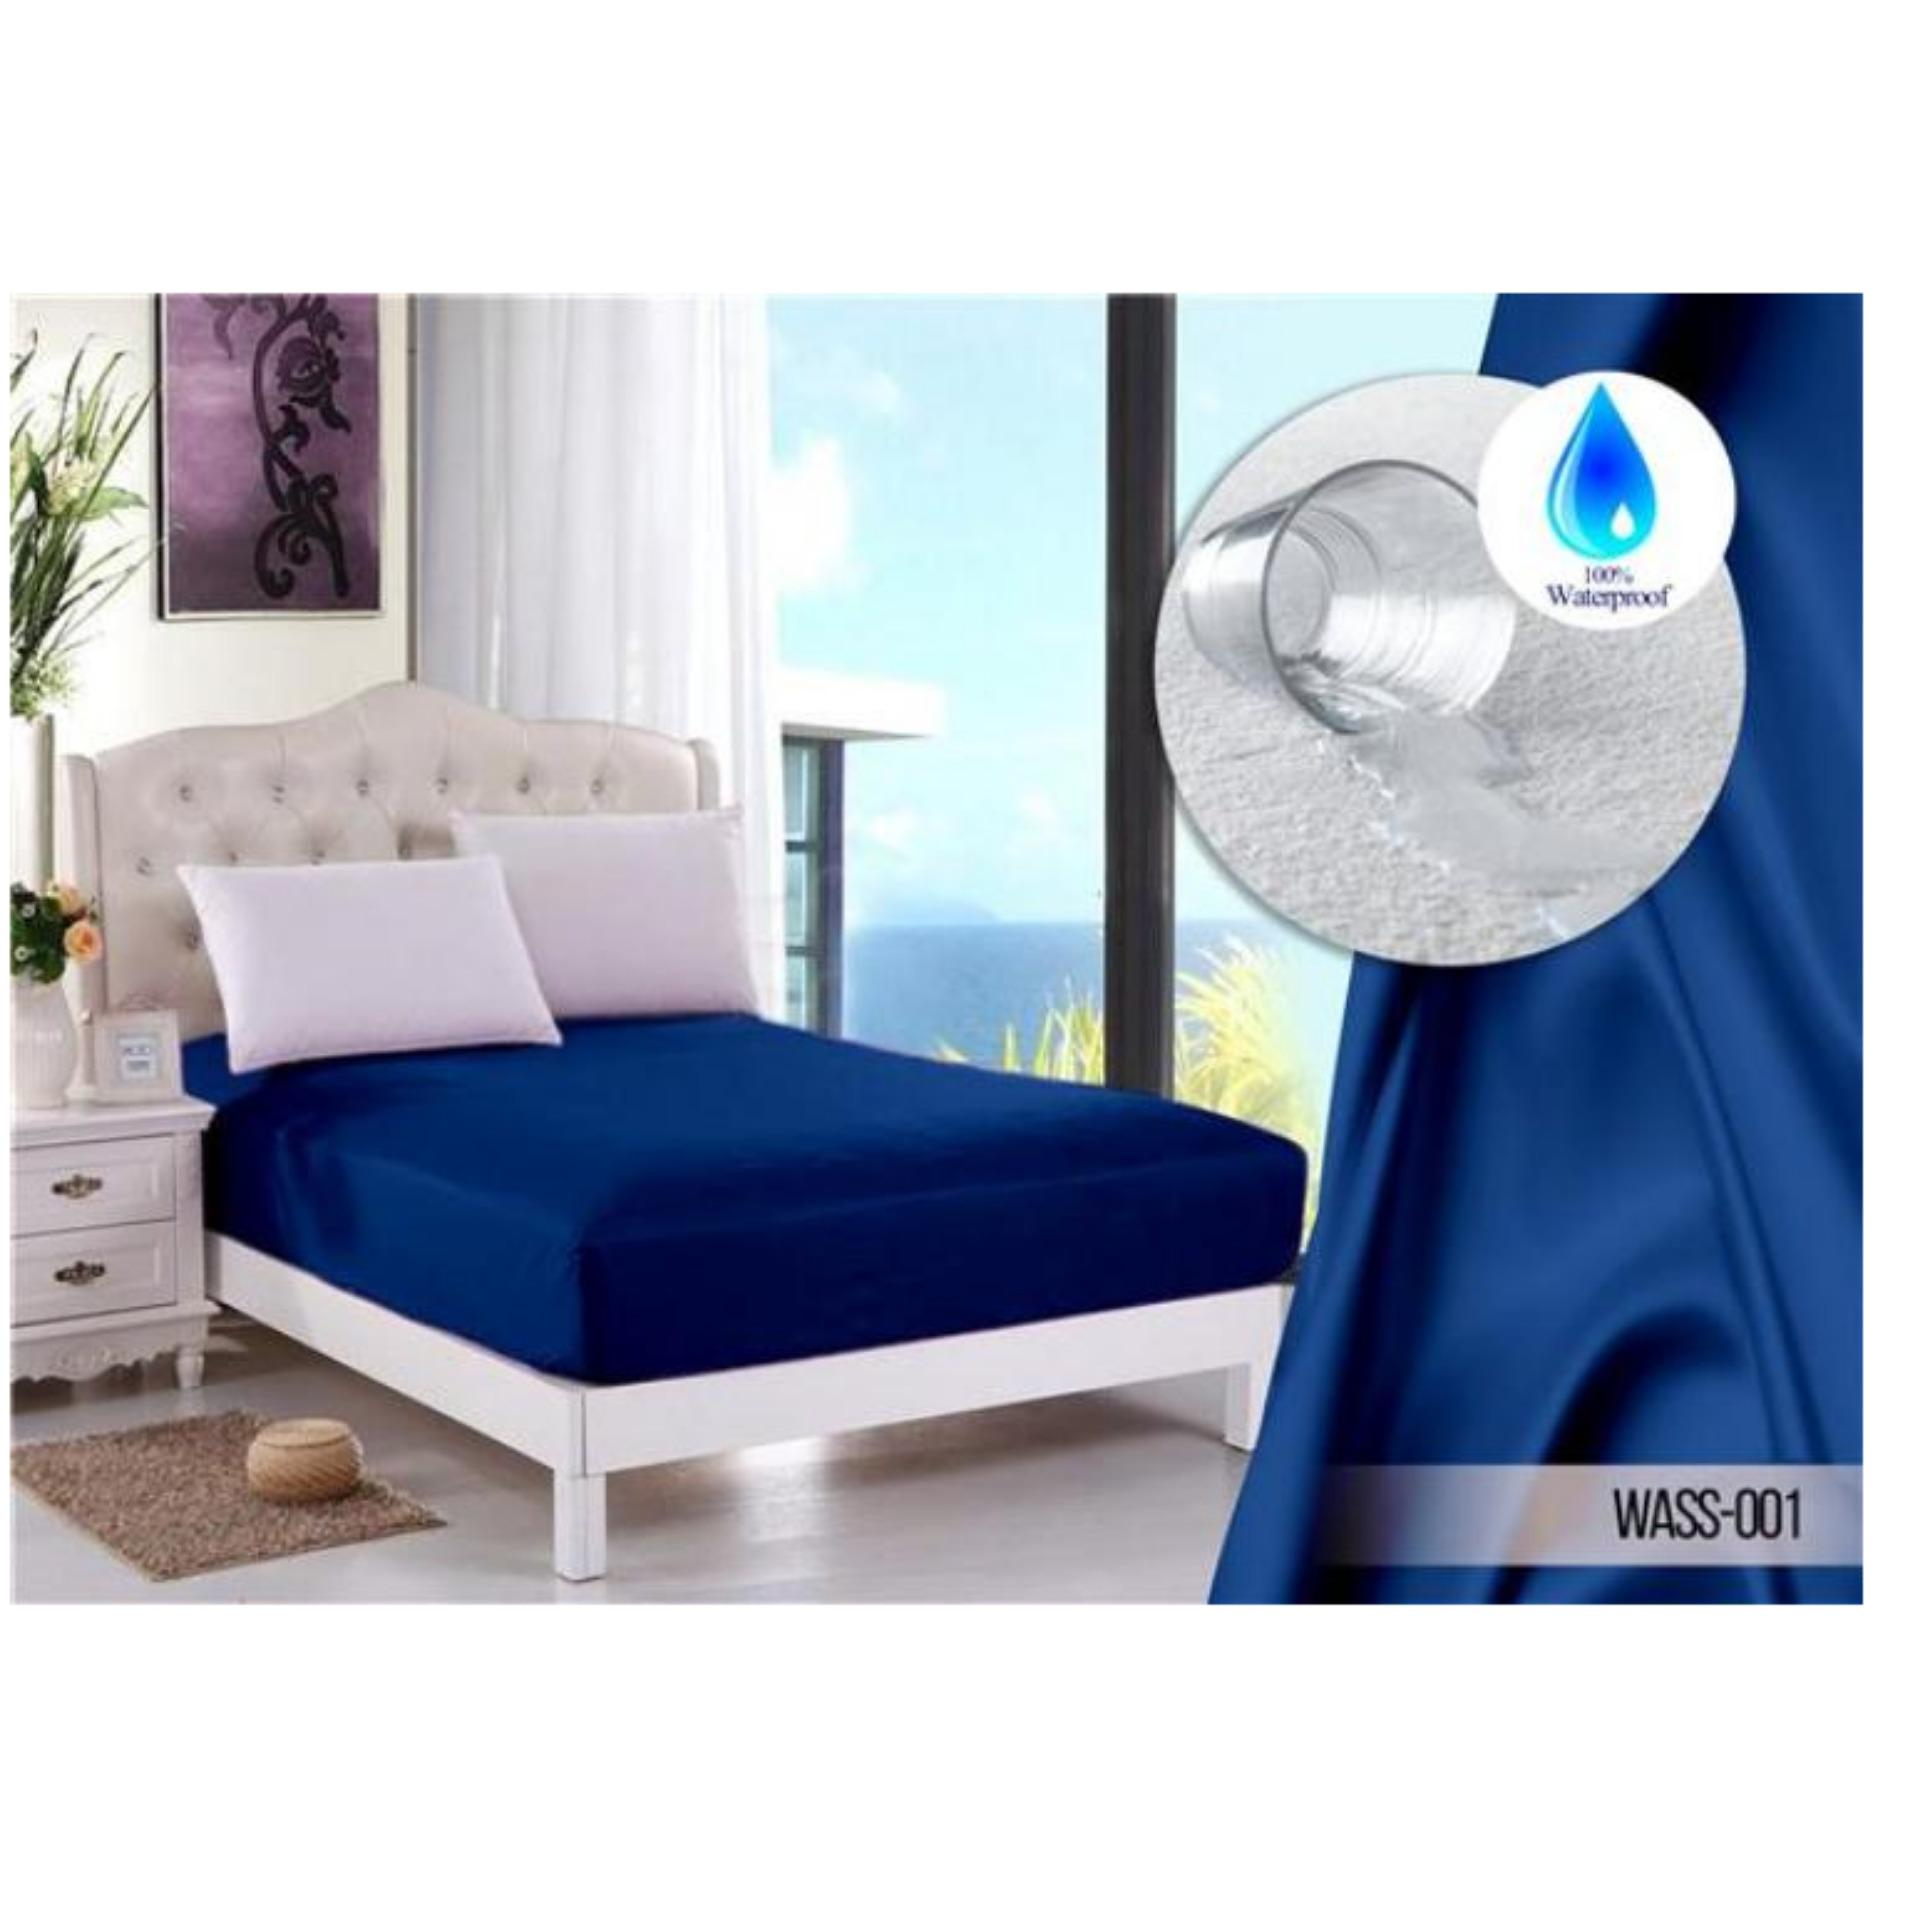 Jaxine Sprei Waterproof Anti Air Biru Tua Jaxine Diskon 30